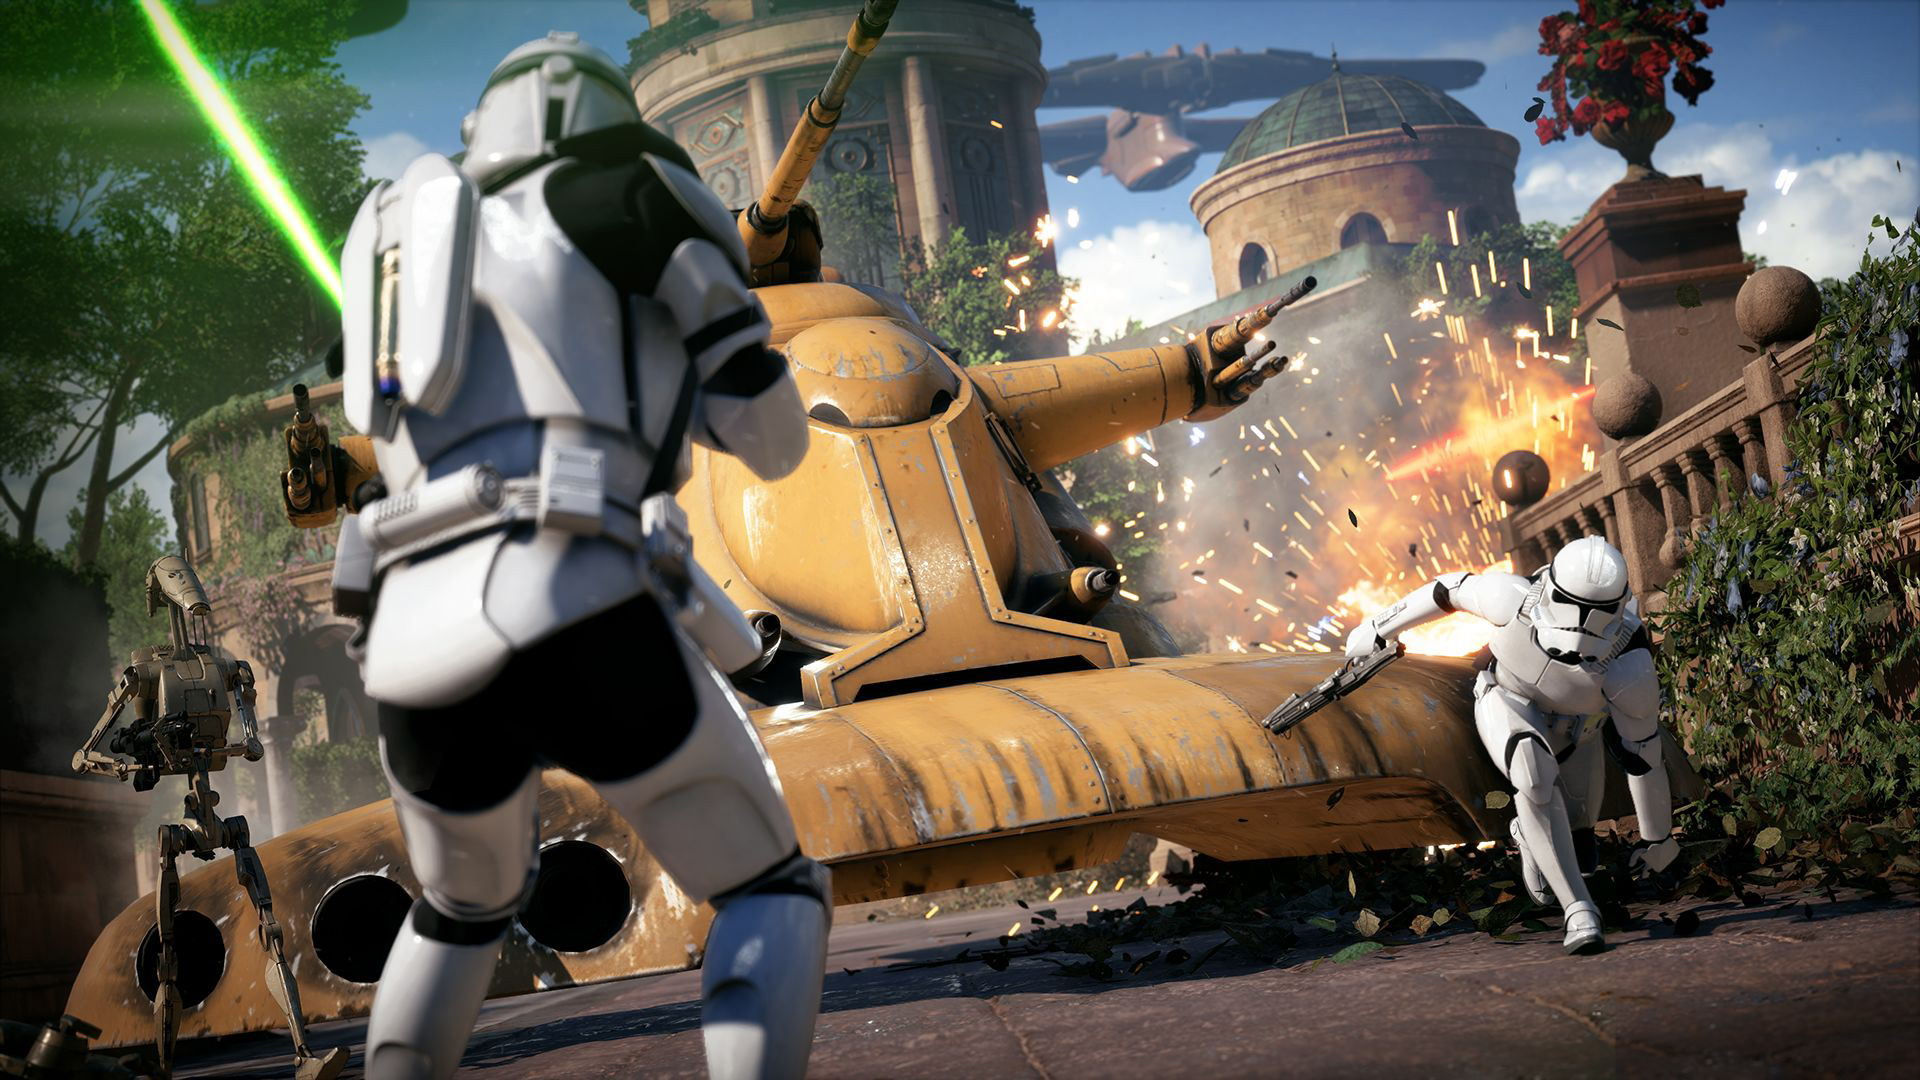 Requisitos de PC para Star Wars Battlefront II revelados